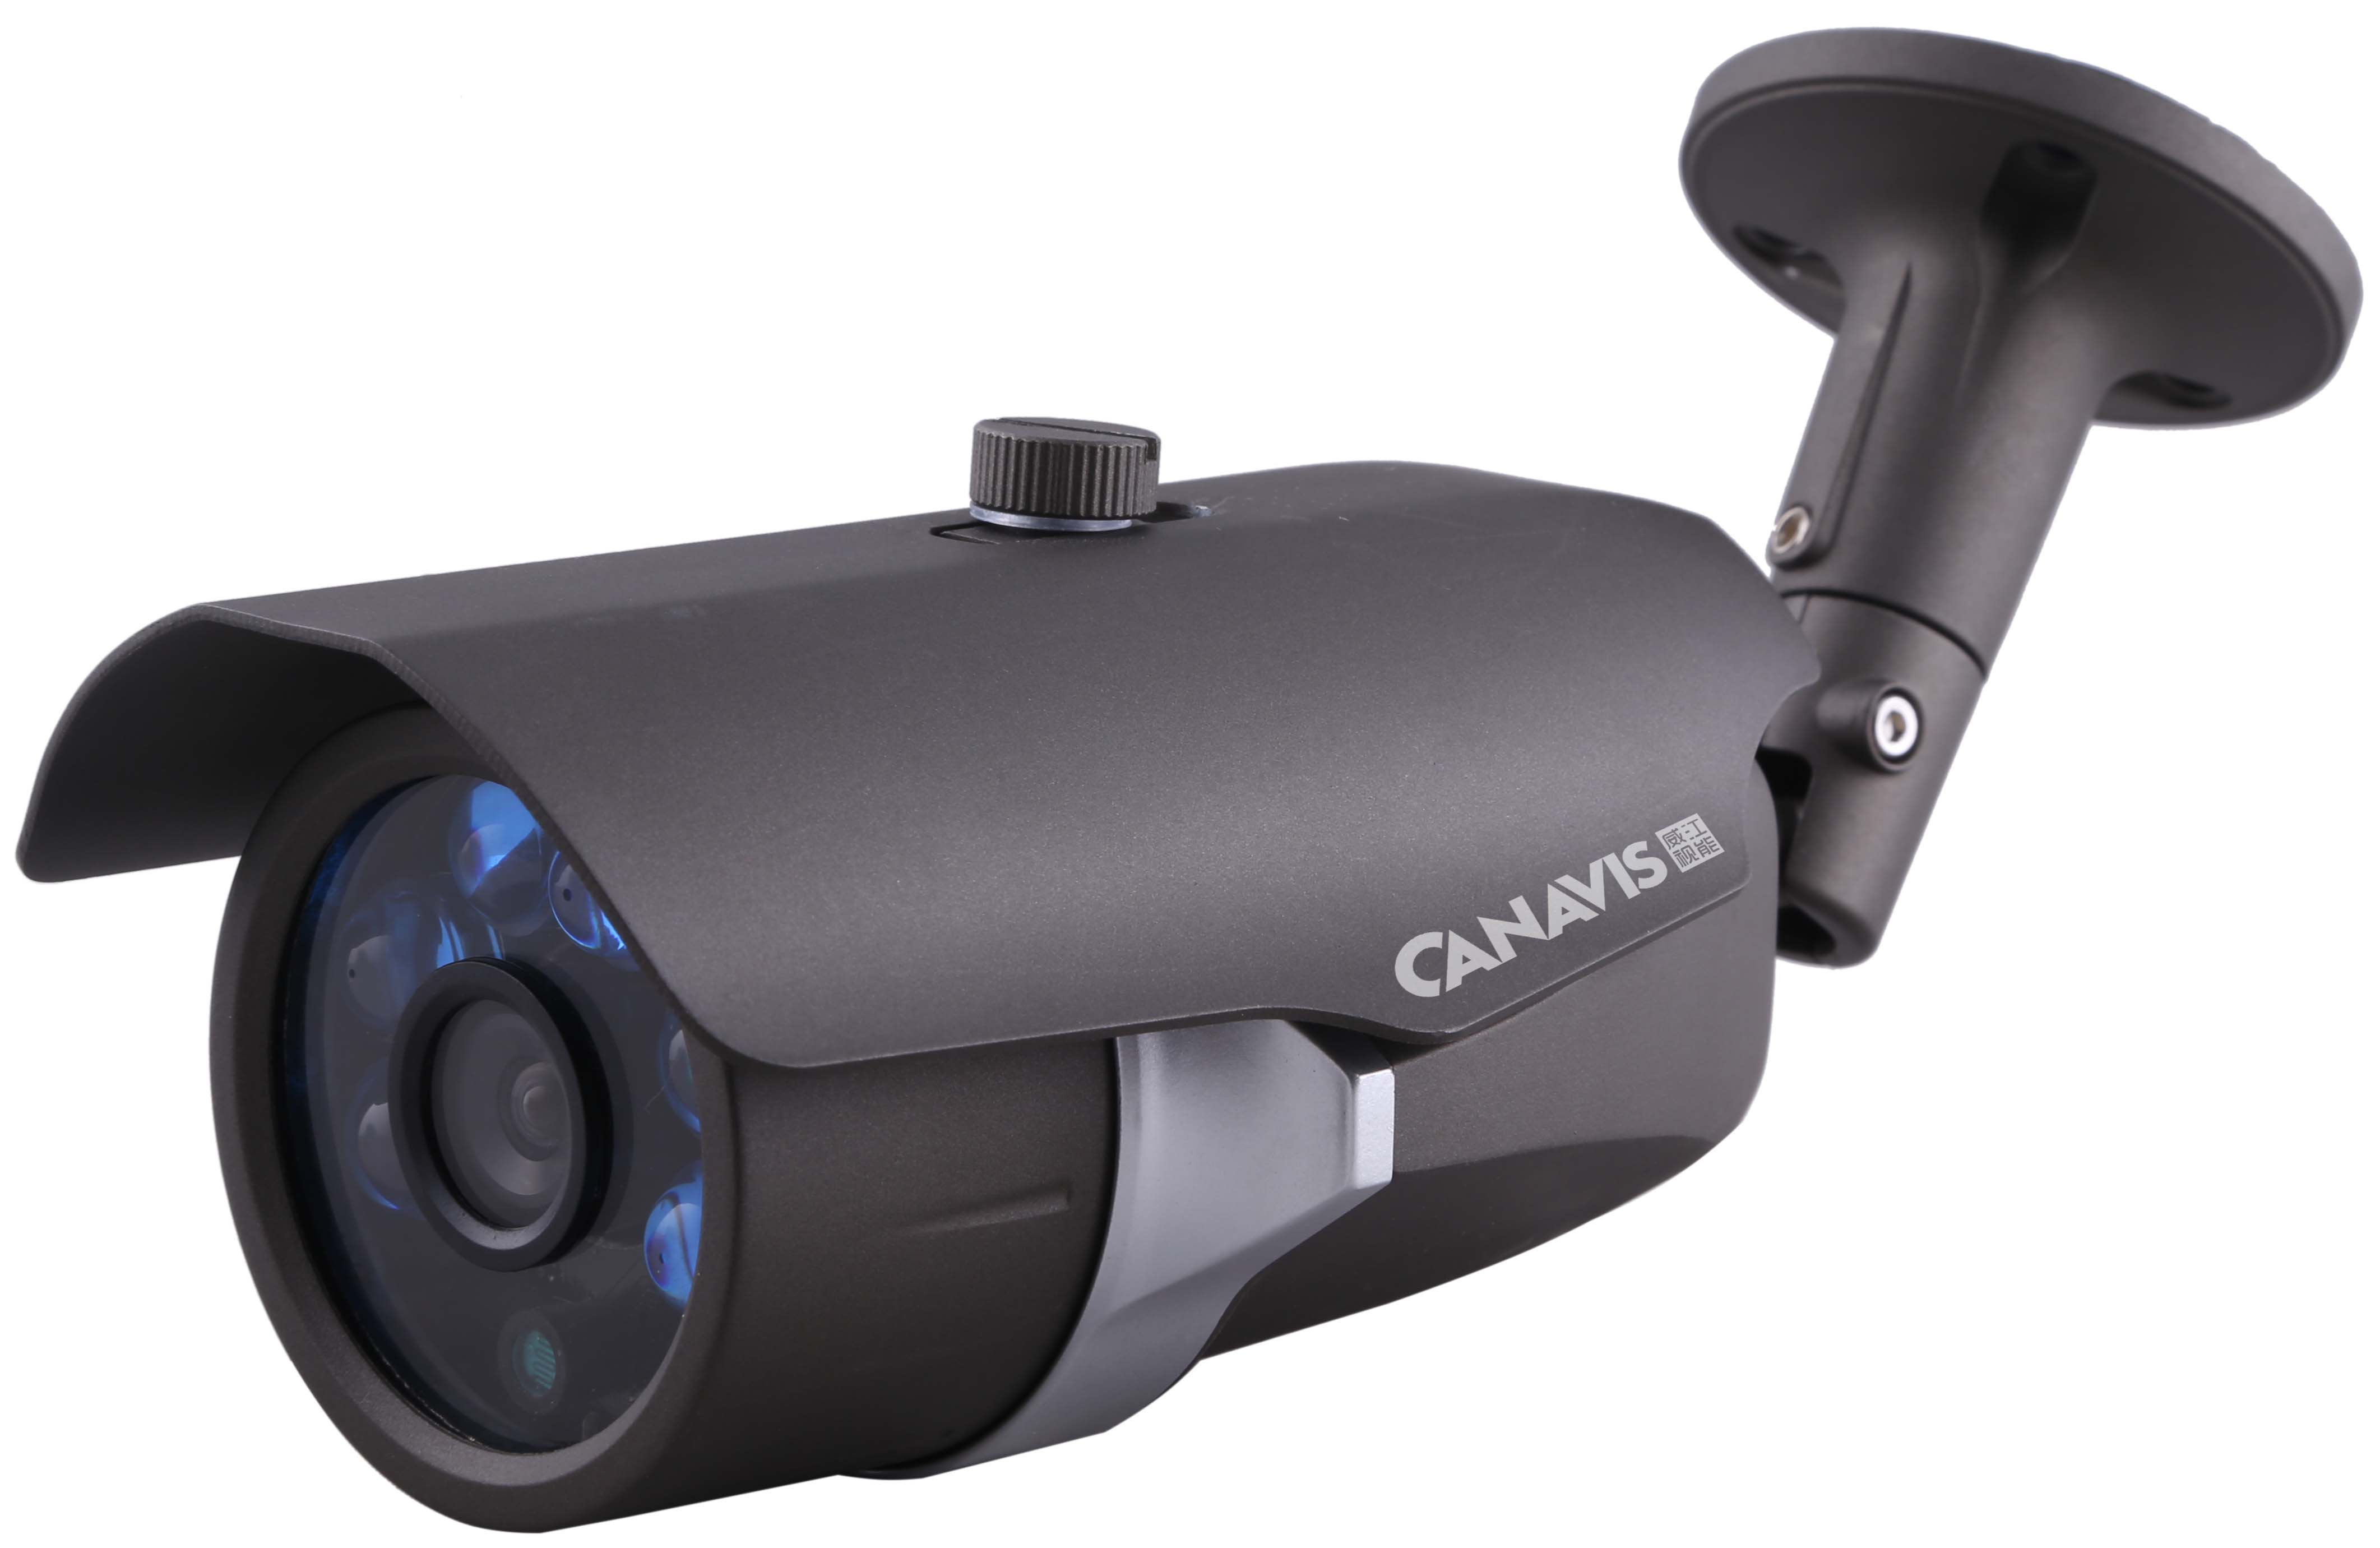 CANAVIS Bullet Camera for OEM